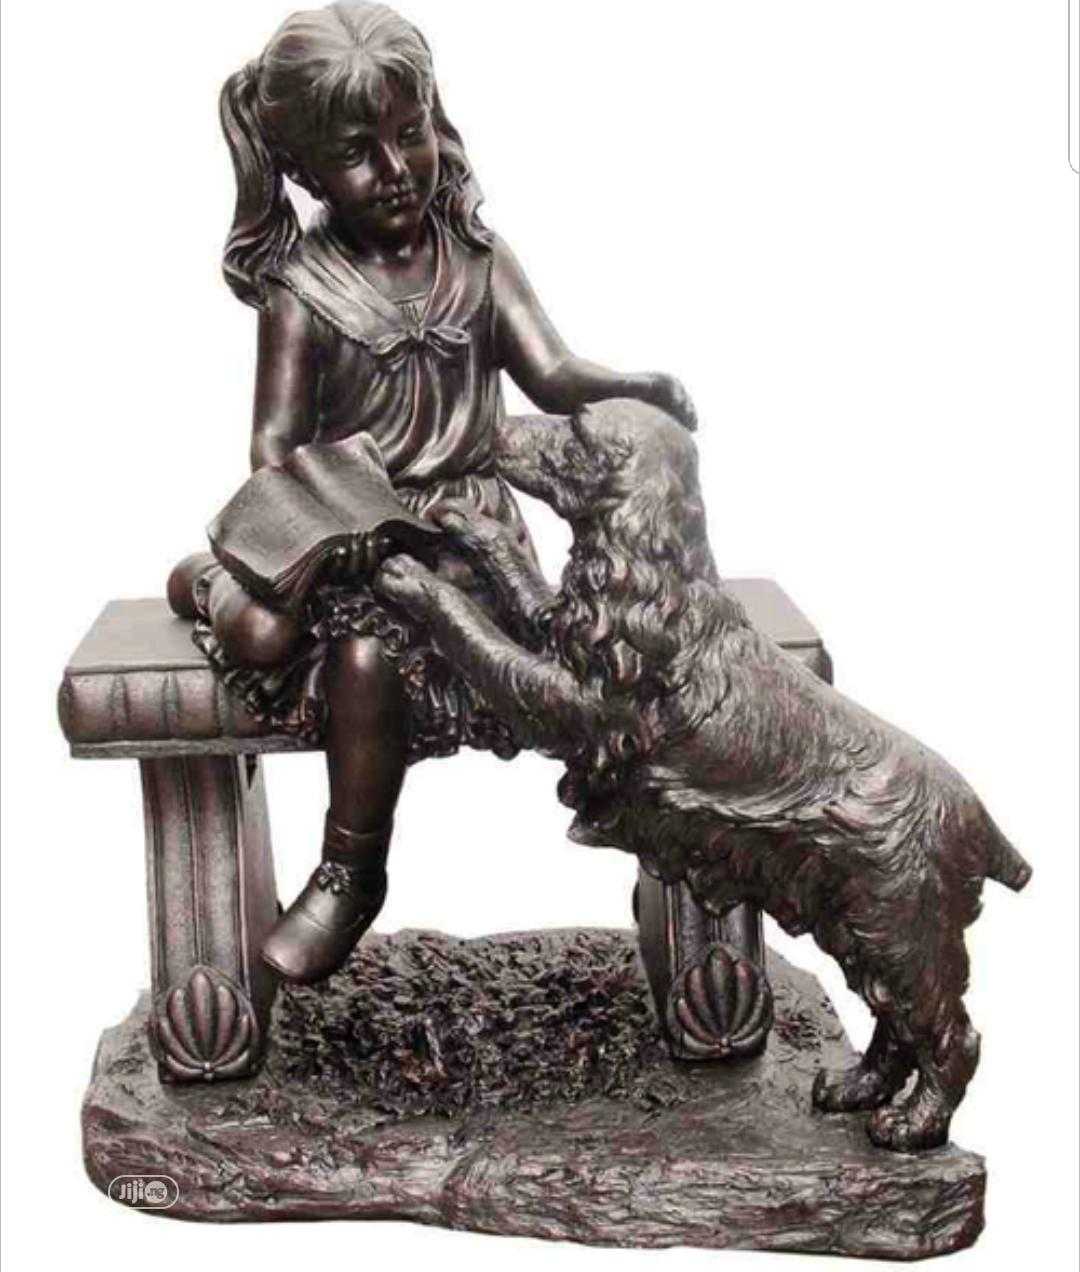 """27.55""""H Girl With Dog Sitting On Bench Outdoor Garden Patio"""